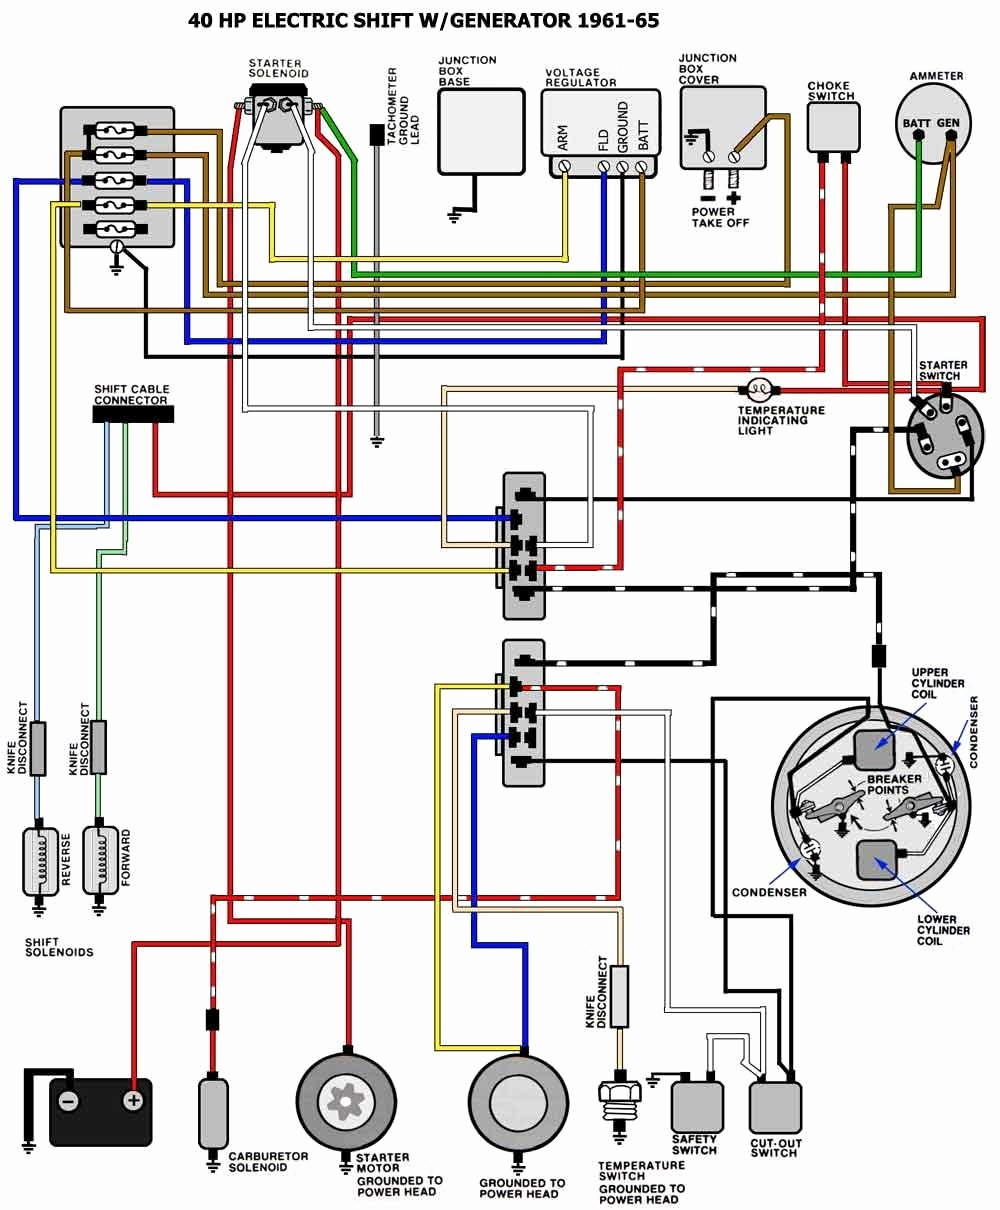 hight resolution of yamaha outboard wiring diagram pdf 40 hp mercury outboard wiring diagram moreover johnson outboard johnson